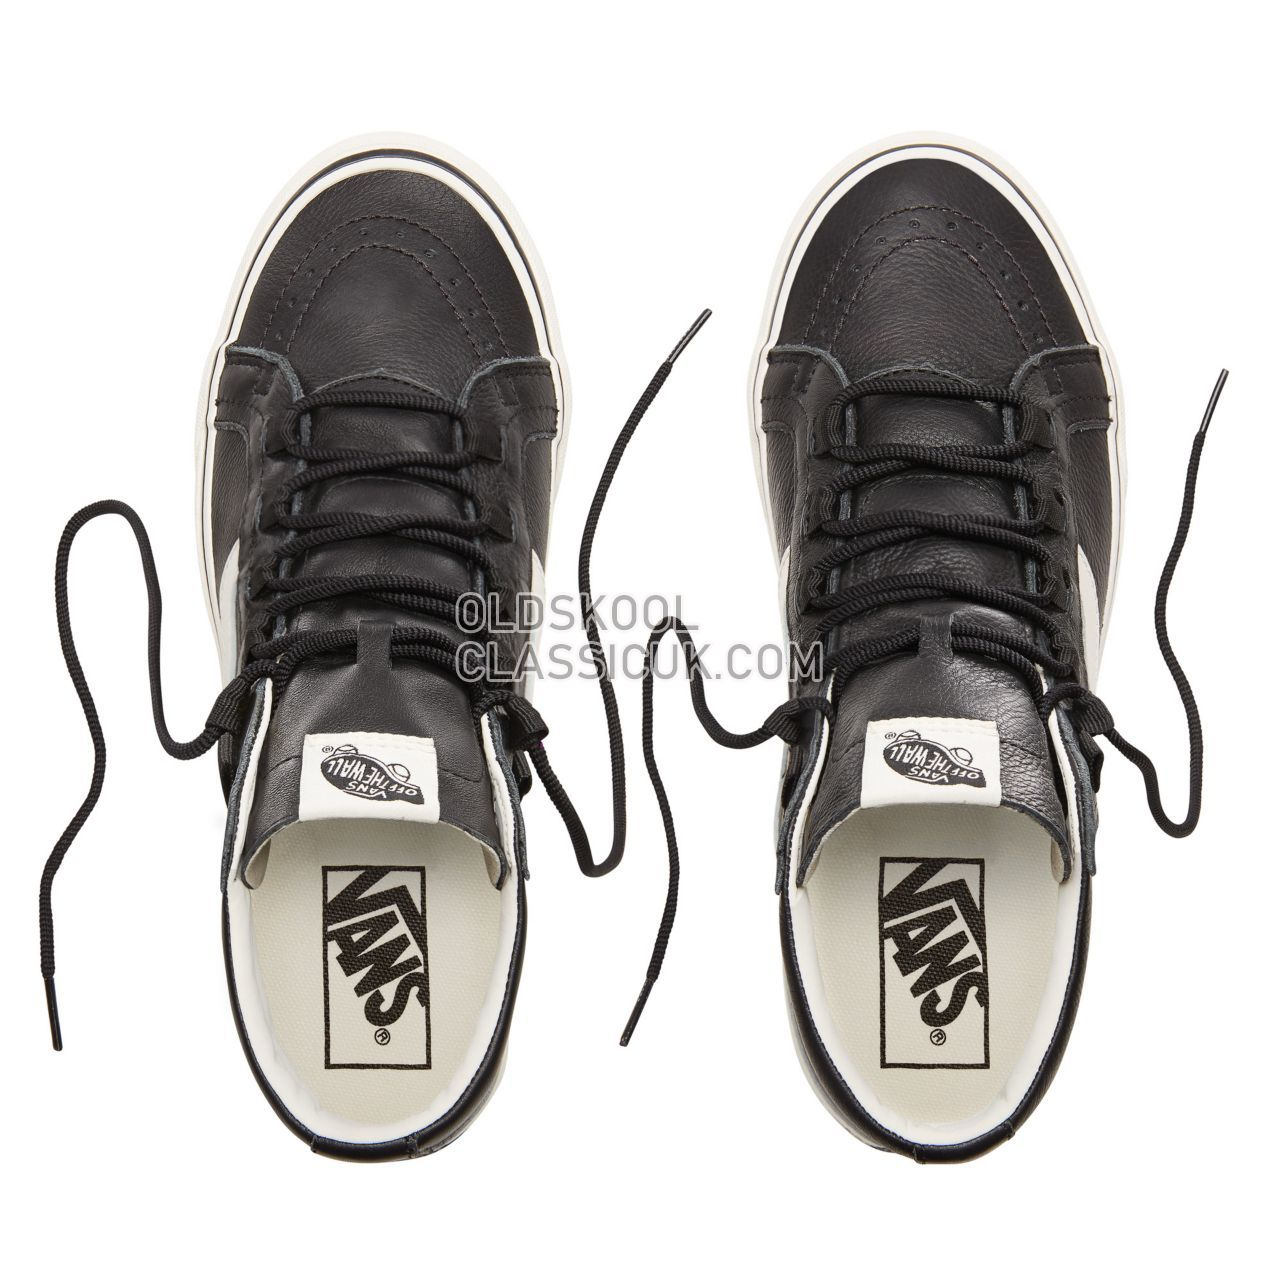 cd60f55966 Vans Leather Sk8-Hi Reissue Ghillie Sneakers Mens (Leather)  Black Marshmallow VN0A3ZCH68X Shoes - £50